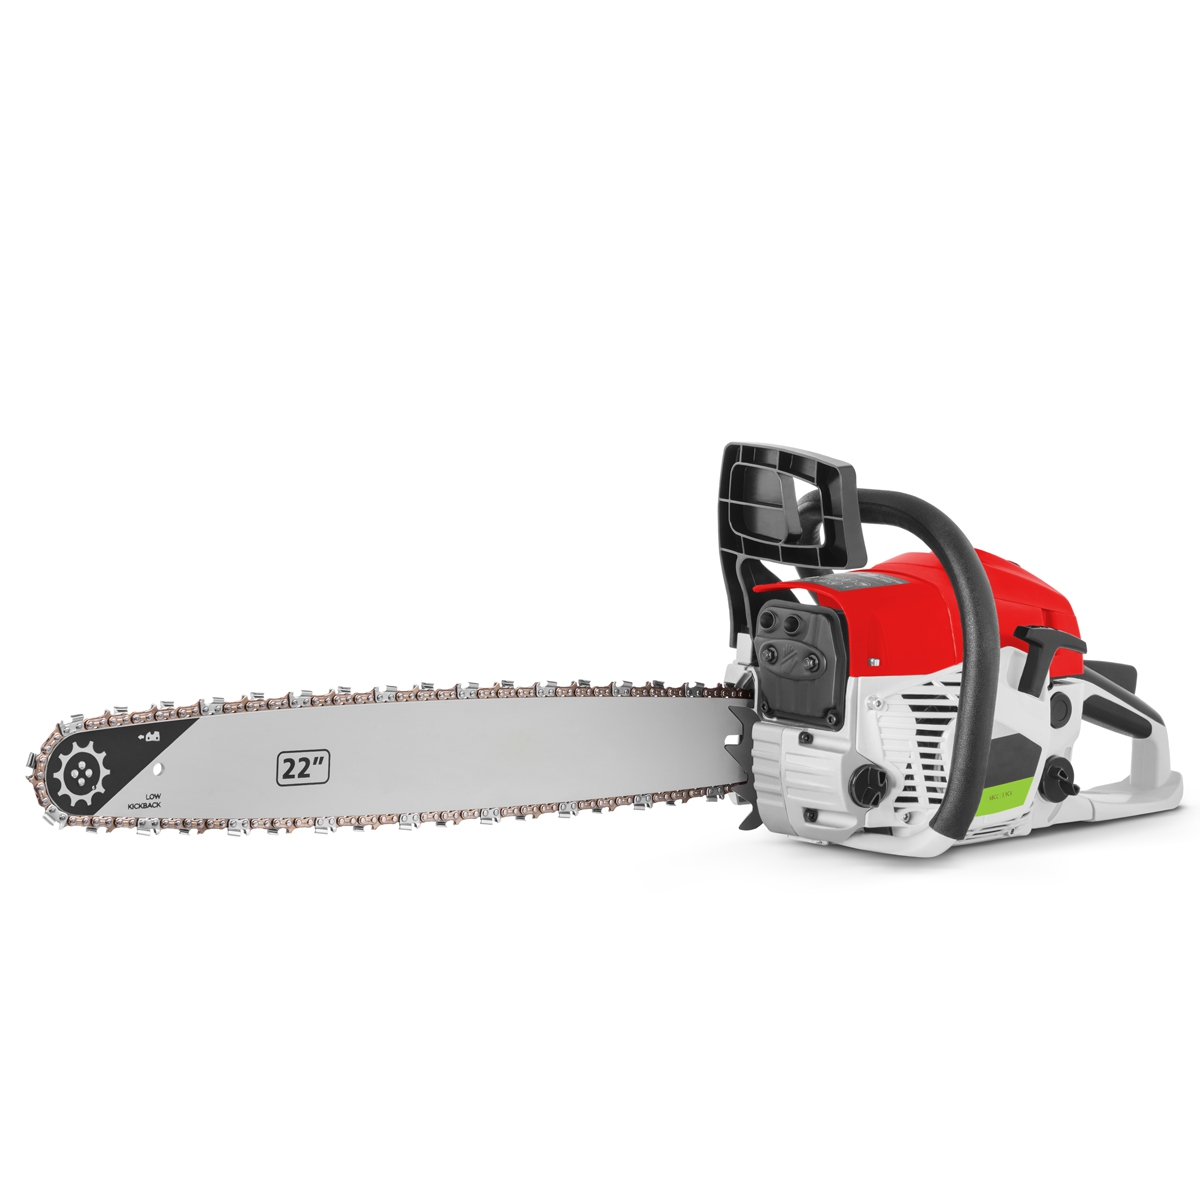 Chainsaw Gasoline-powered 2-stroke 68cc And 3,9cv And Sword-22 '', Arranque Easy-Start, Anti-Vibration System